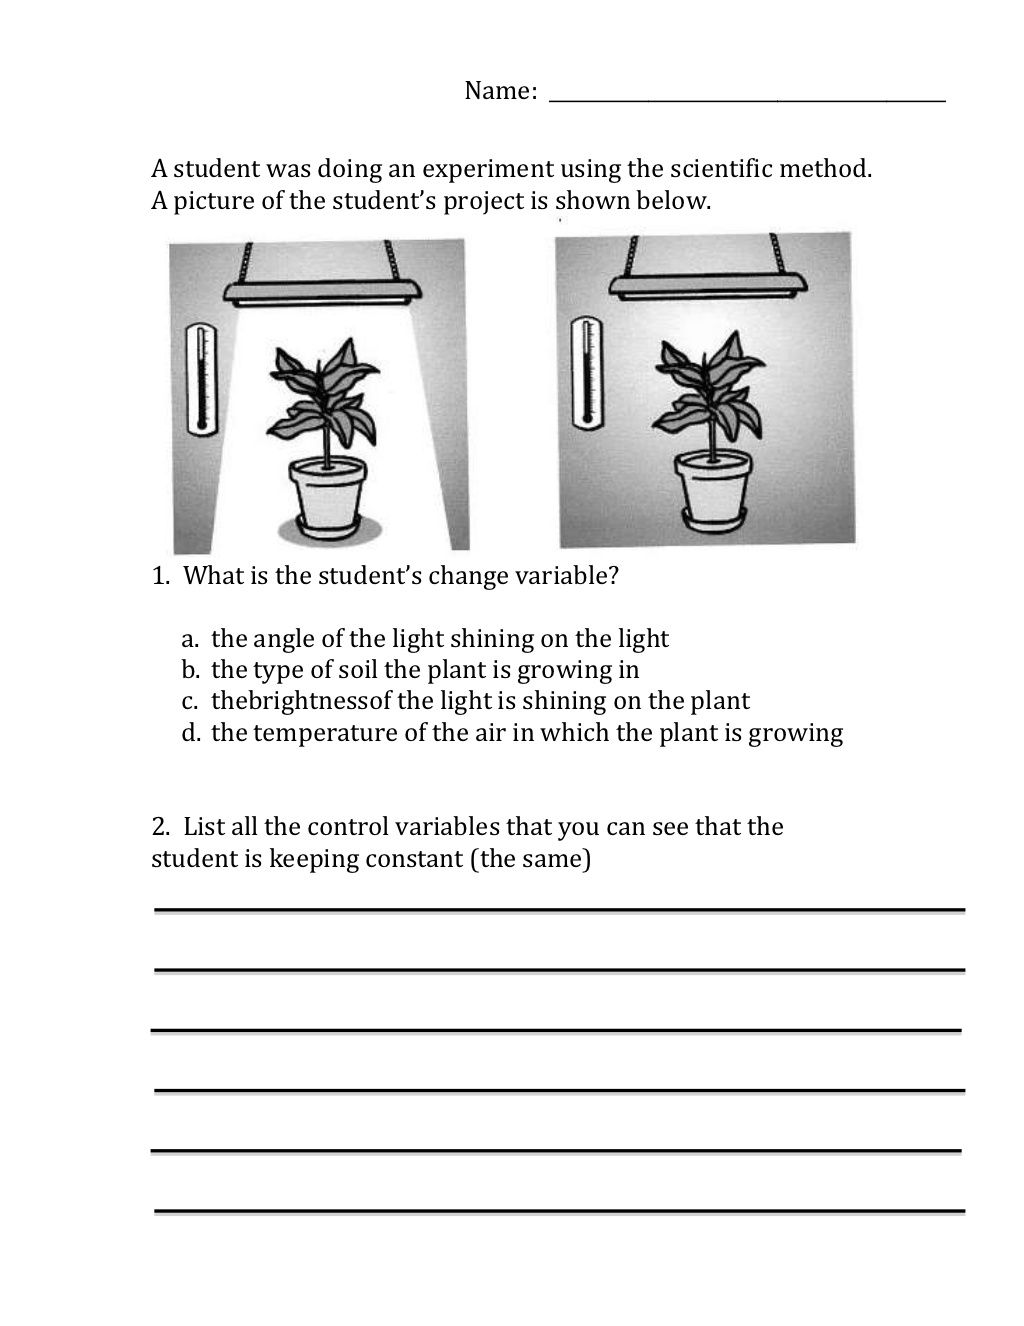 Scientific Method Variables Worksheet By Moira Whitehouse Via Slideshare